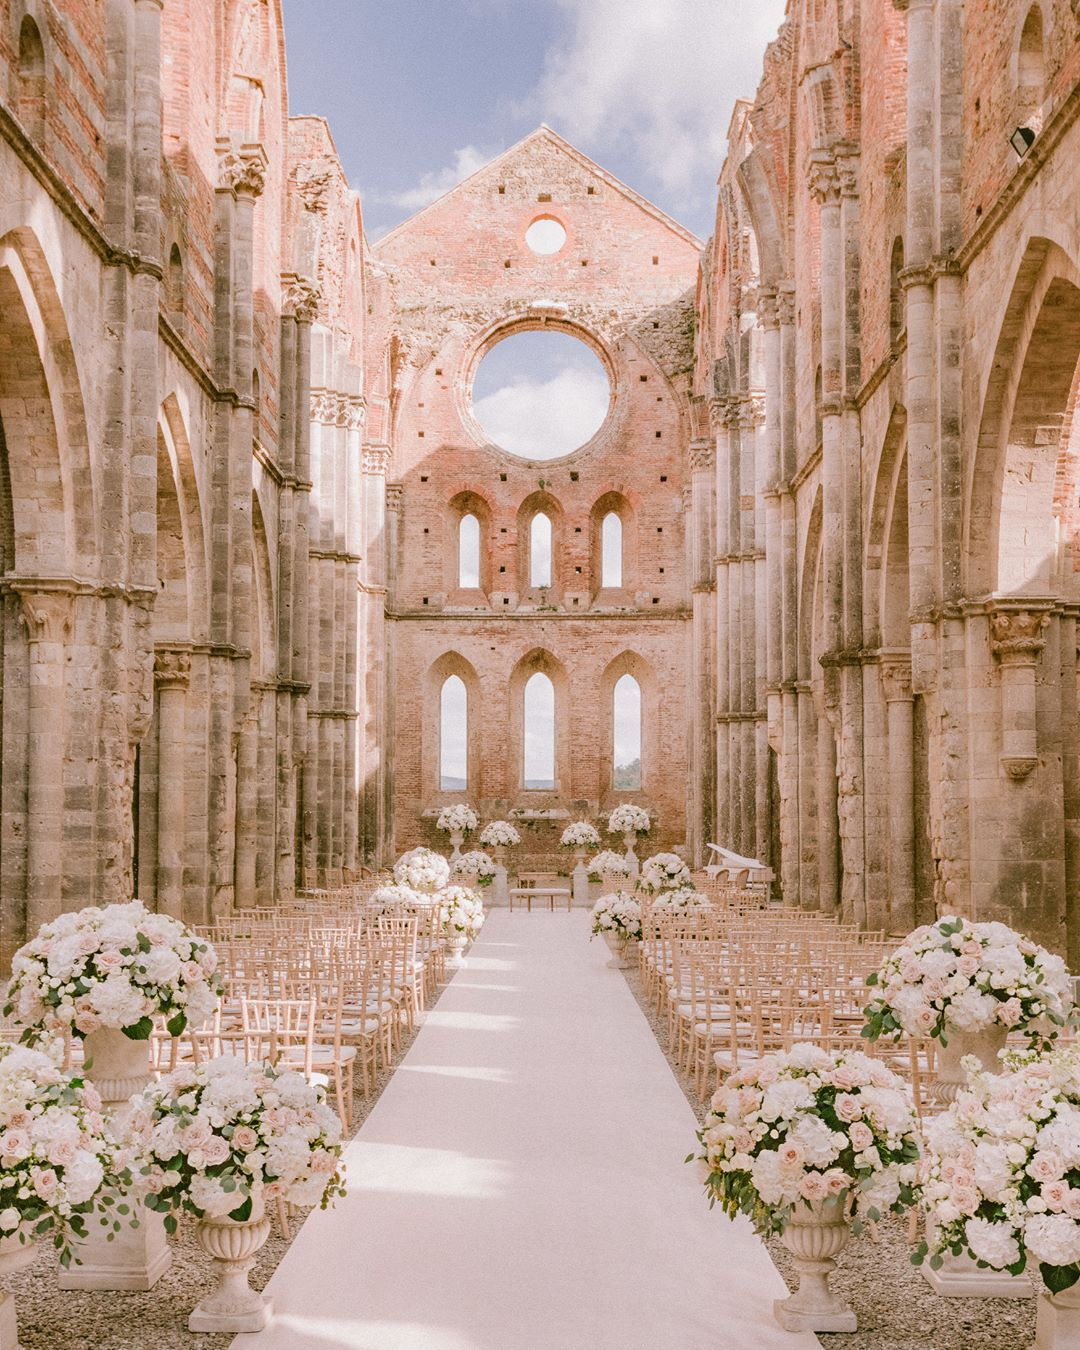 10 Stunning Wedding Venues In Italy We're Dying To Visit